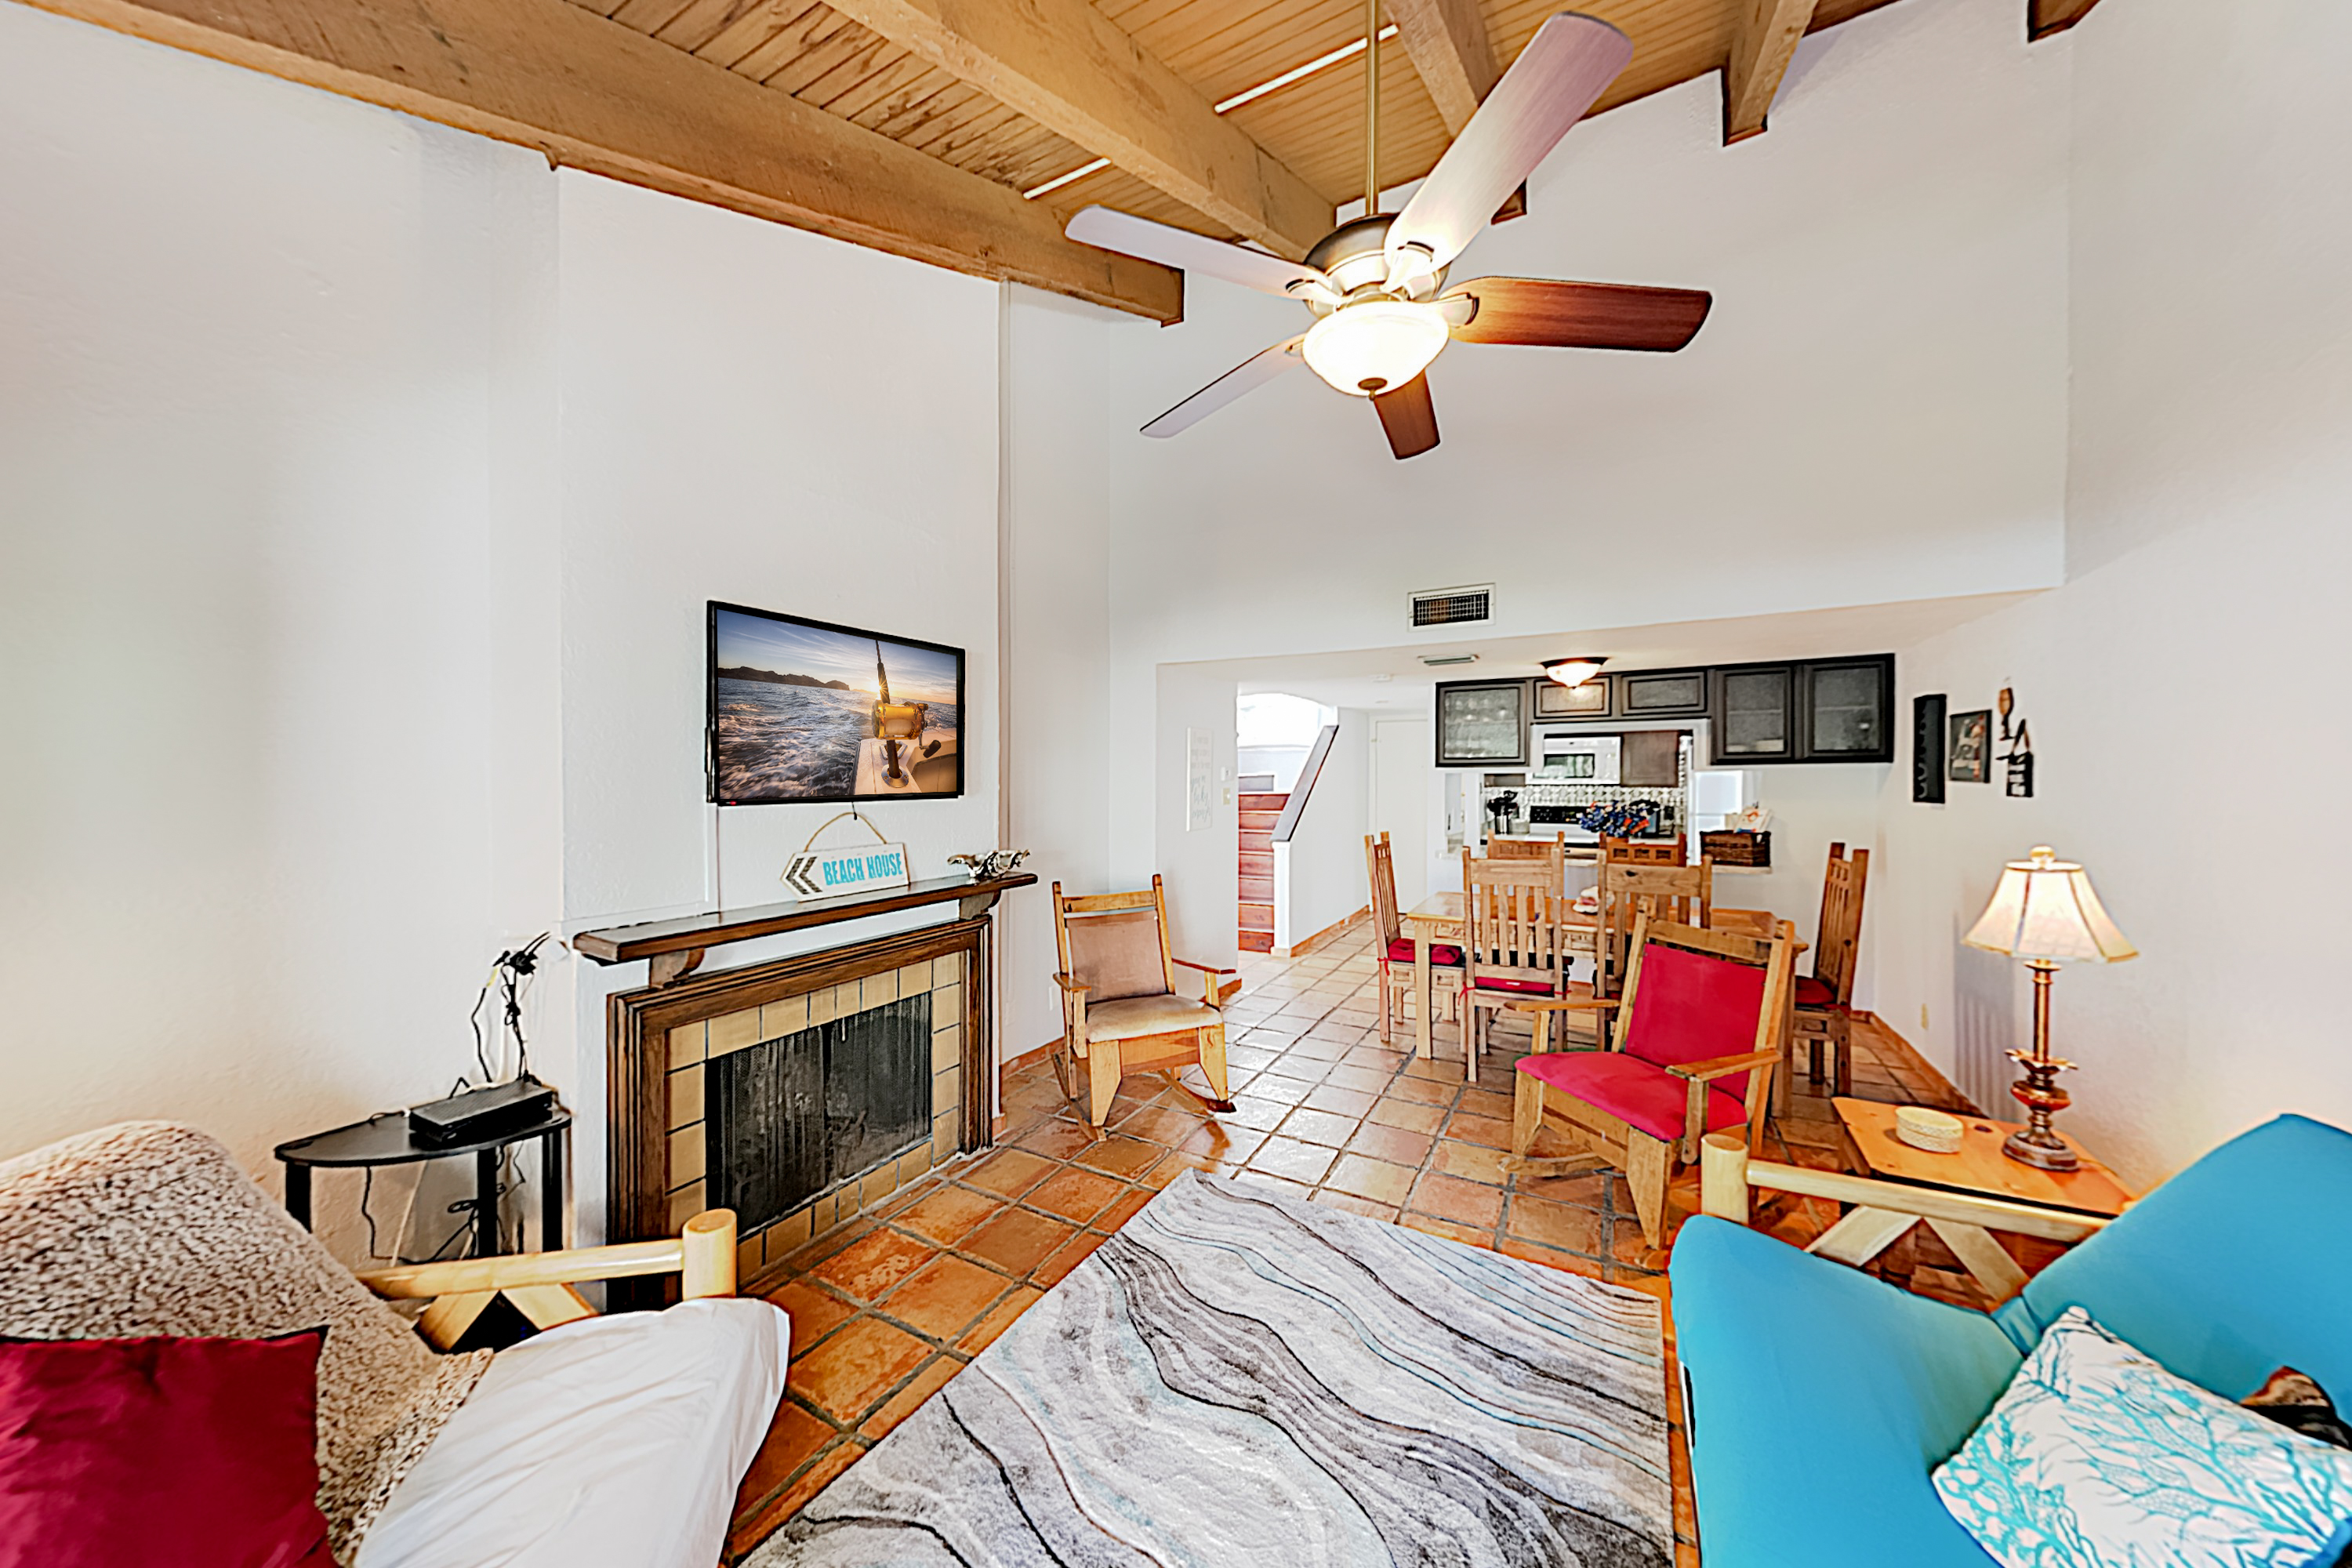 Rockport TX Vacation Rental Welcome! This townhome